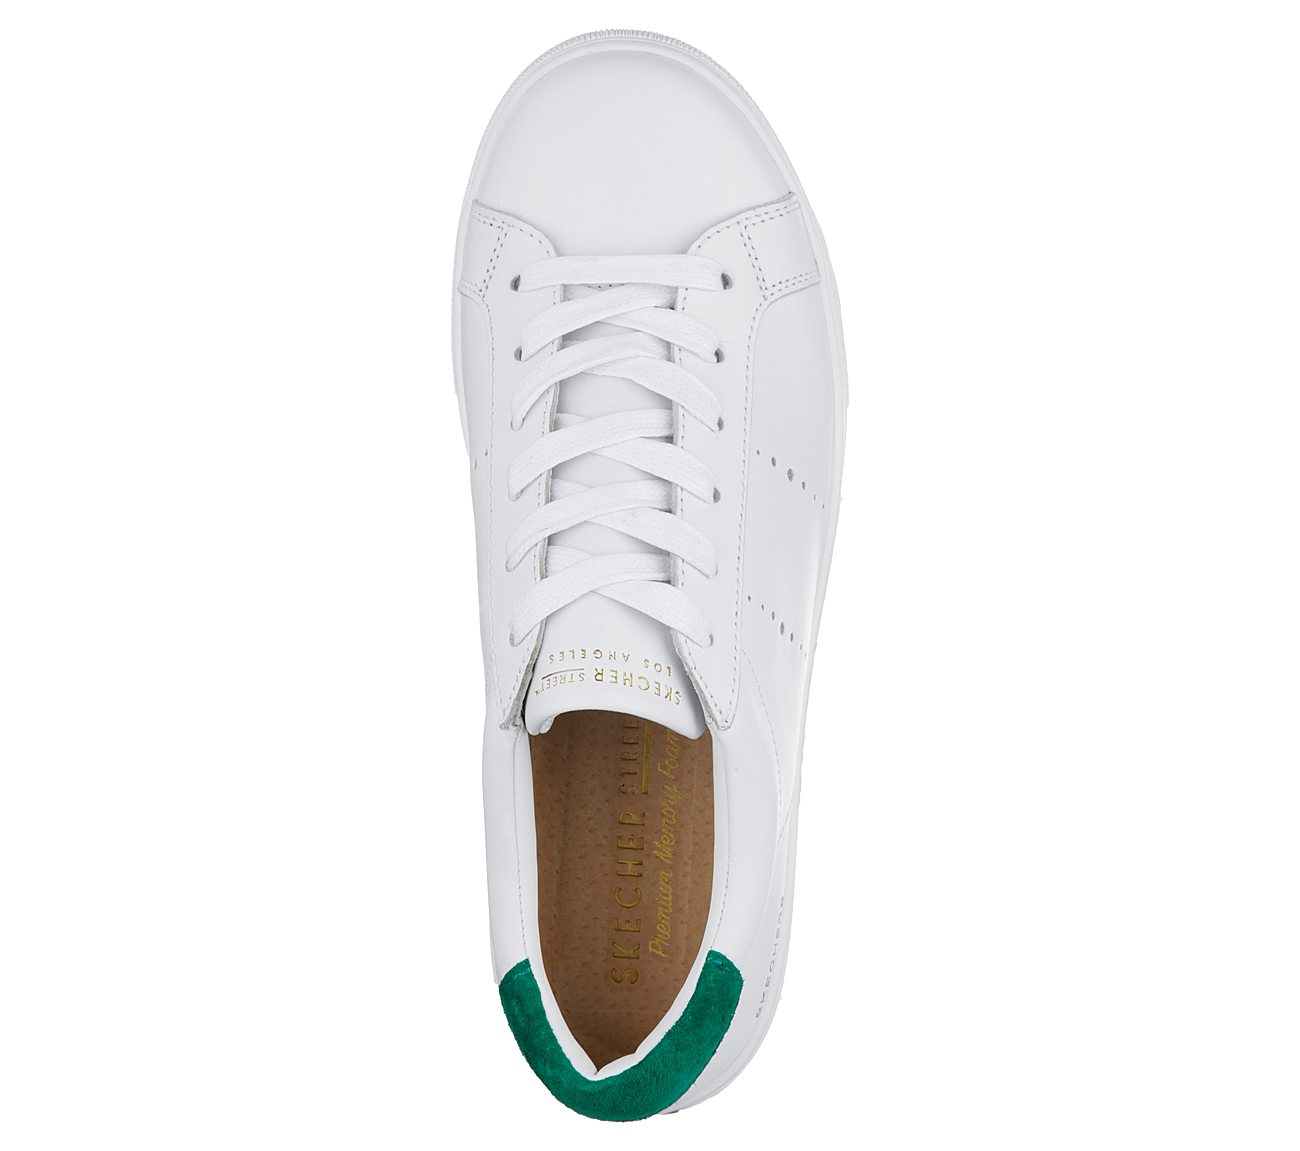 discount separation shoes discount for sale Moda - Walk Streets